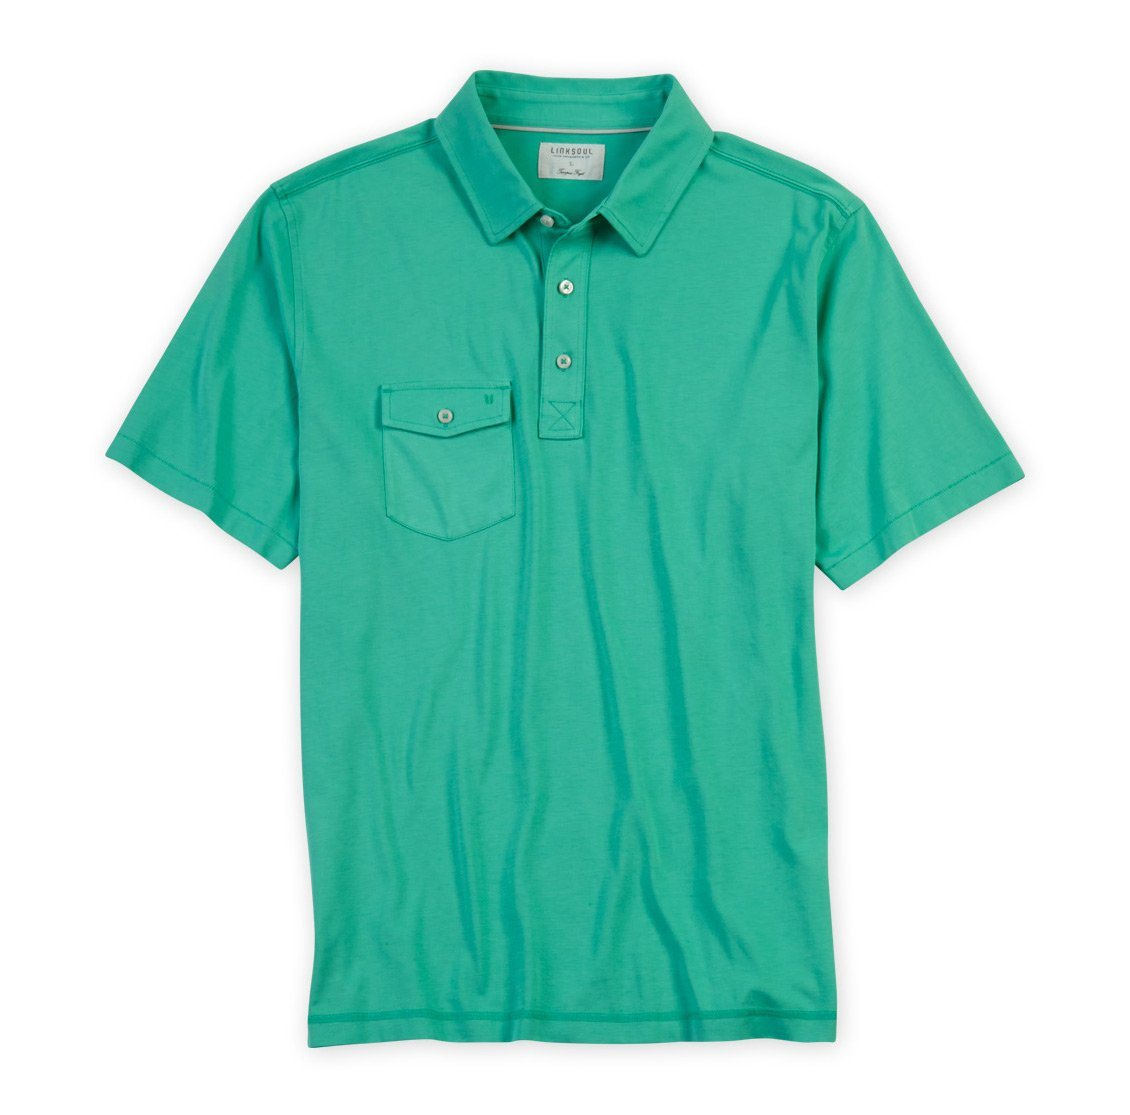 Coast Highway Classic Knit Polo